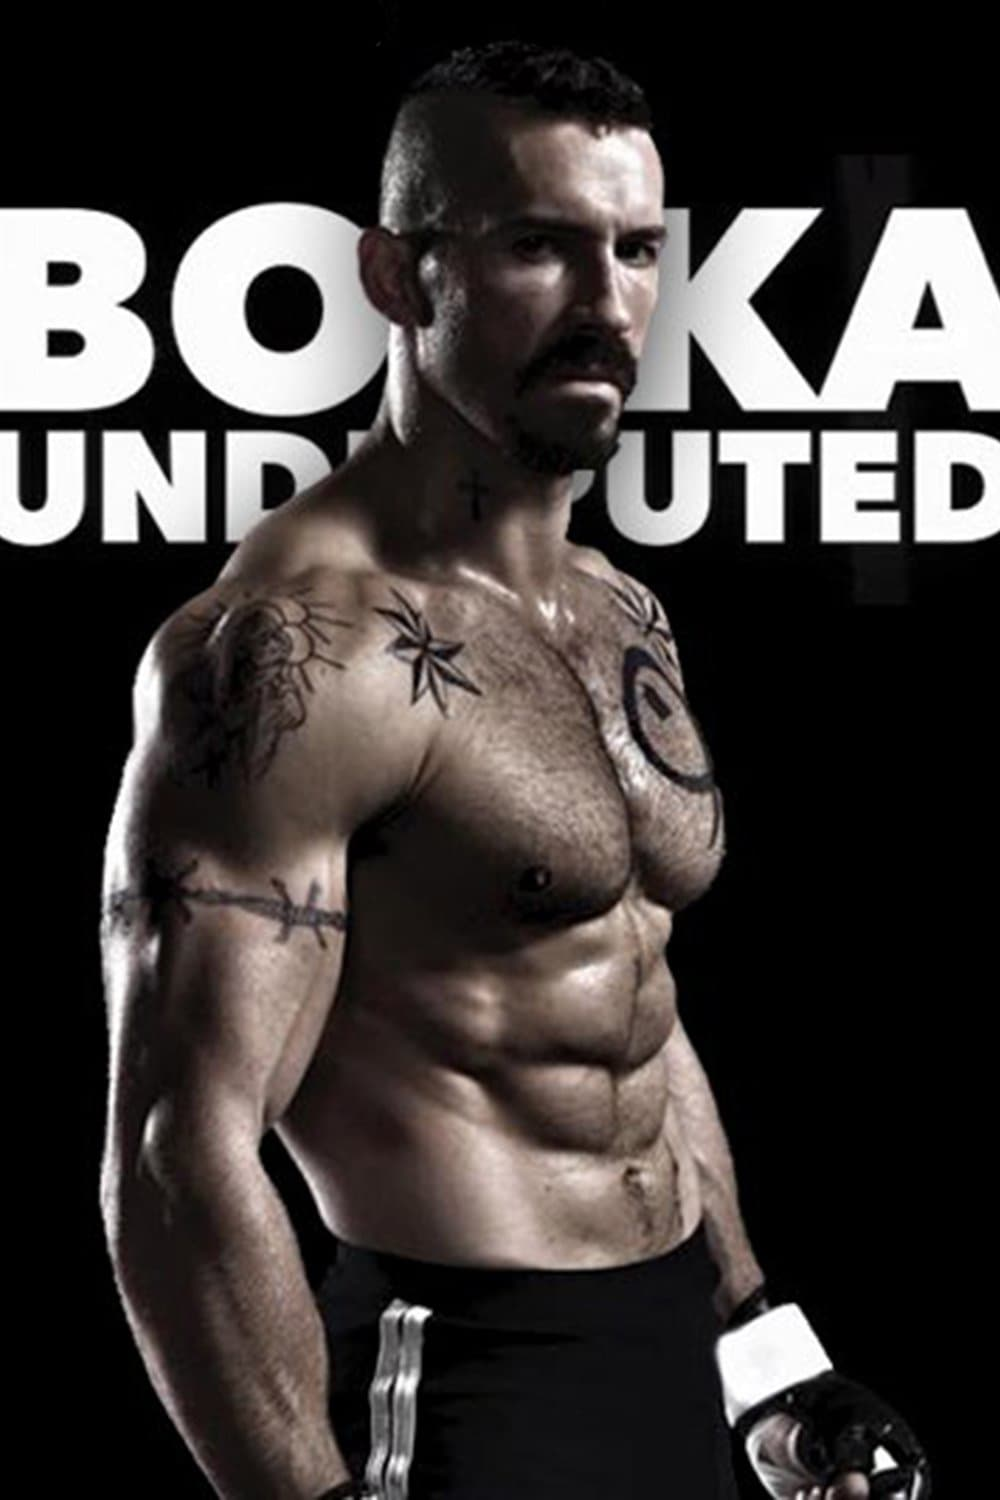 Boyka: Undisputed IV Streaming